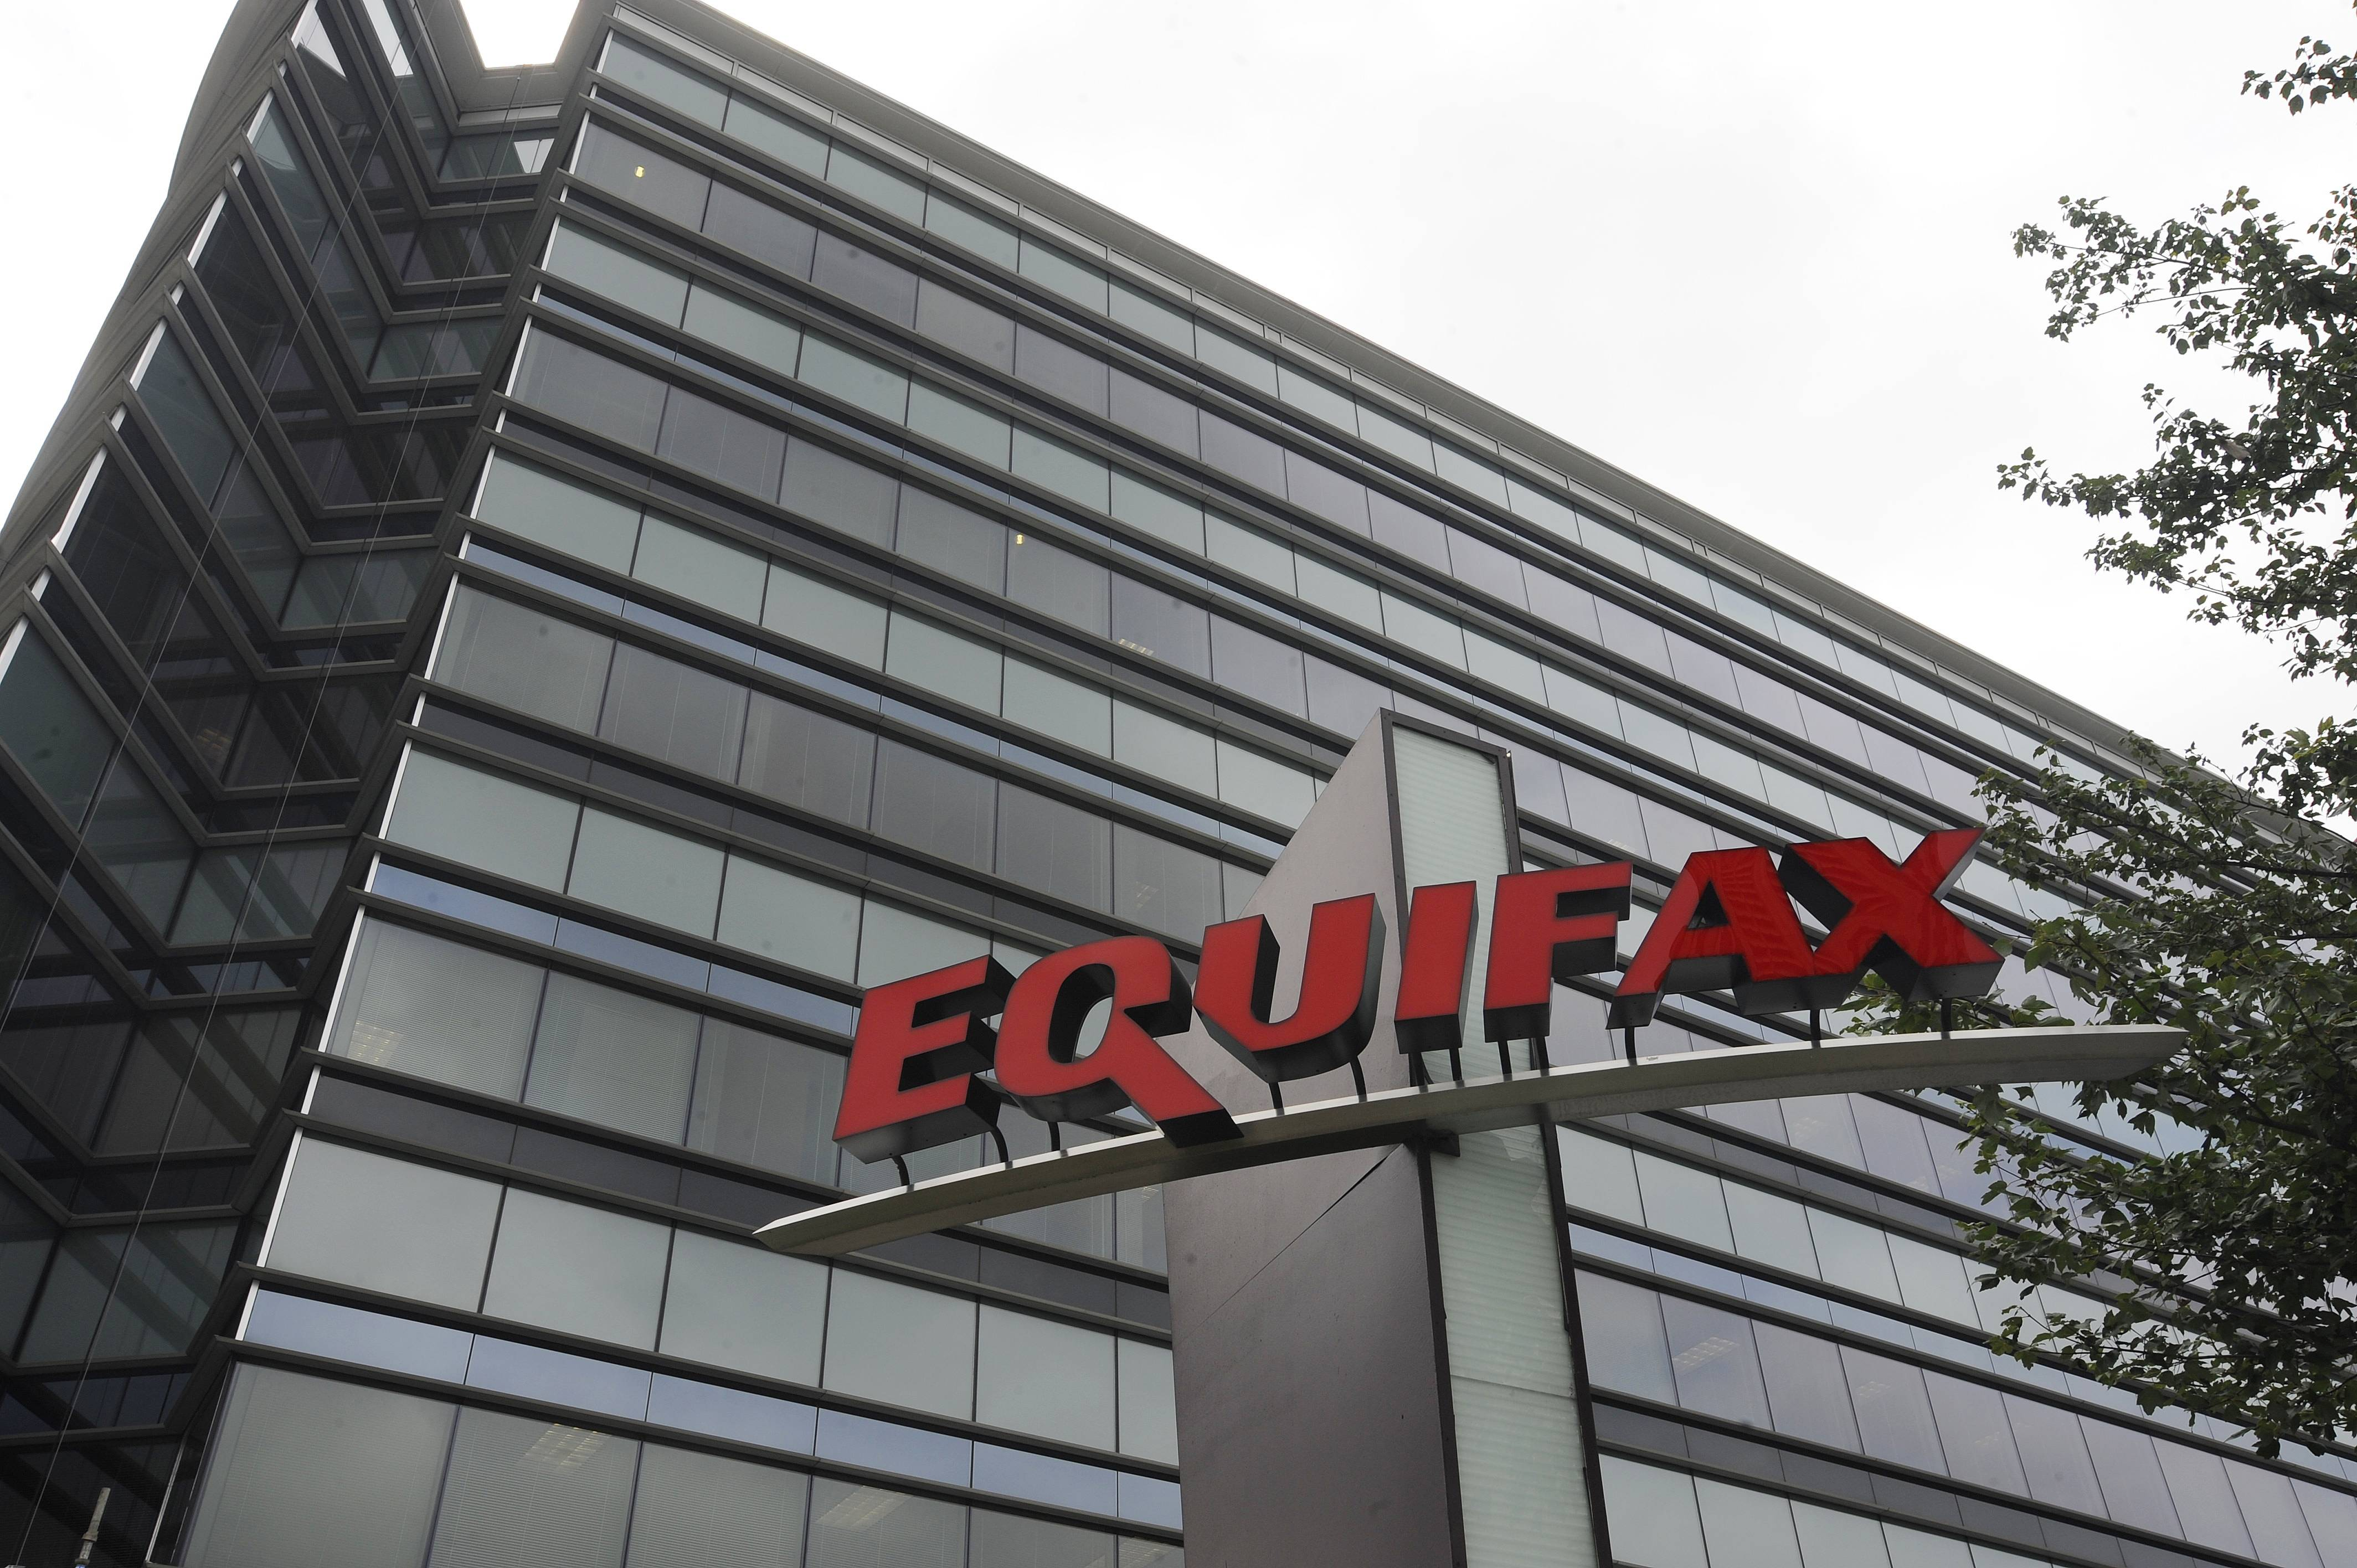 Equifax asks consumers for personal info, even after massive data breach